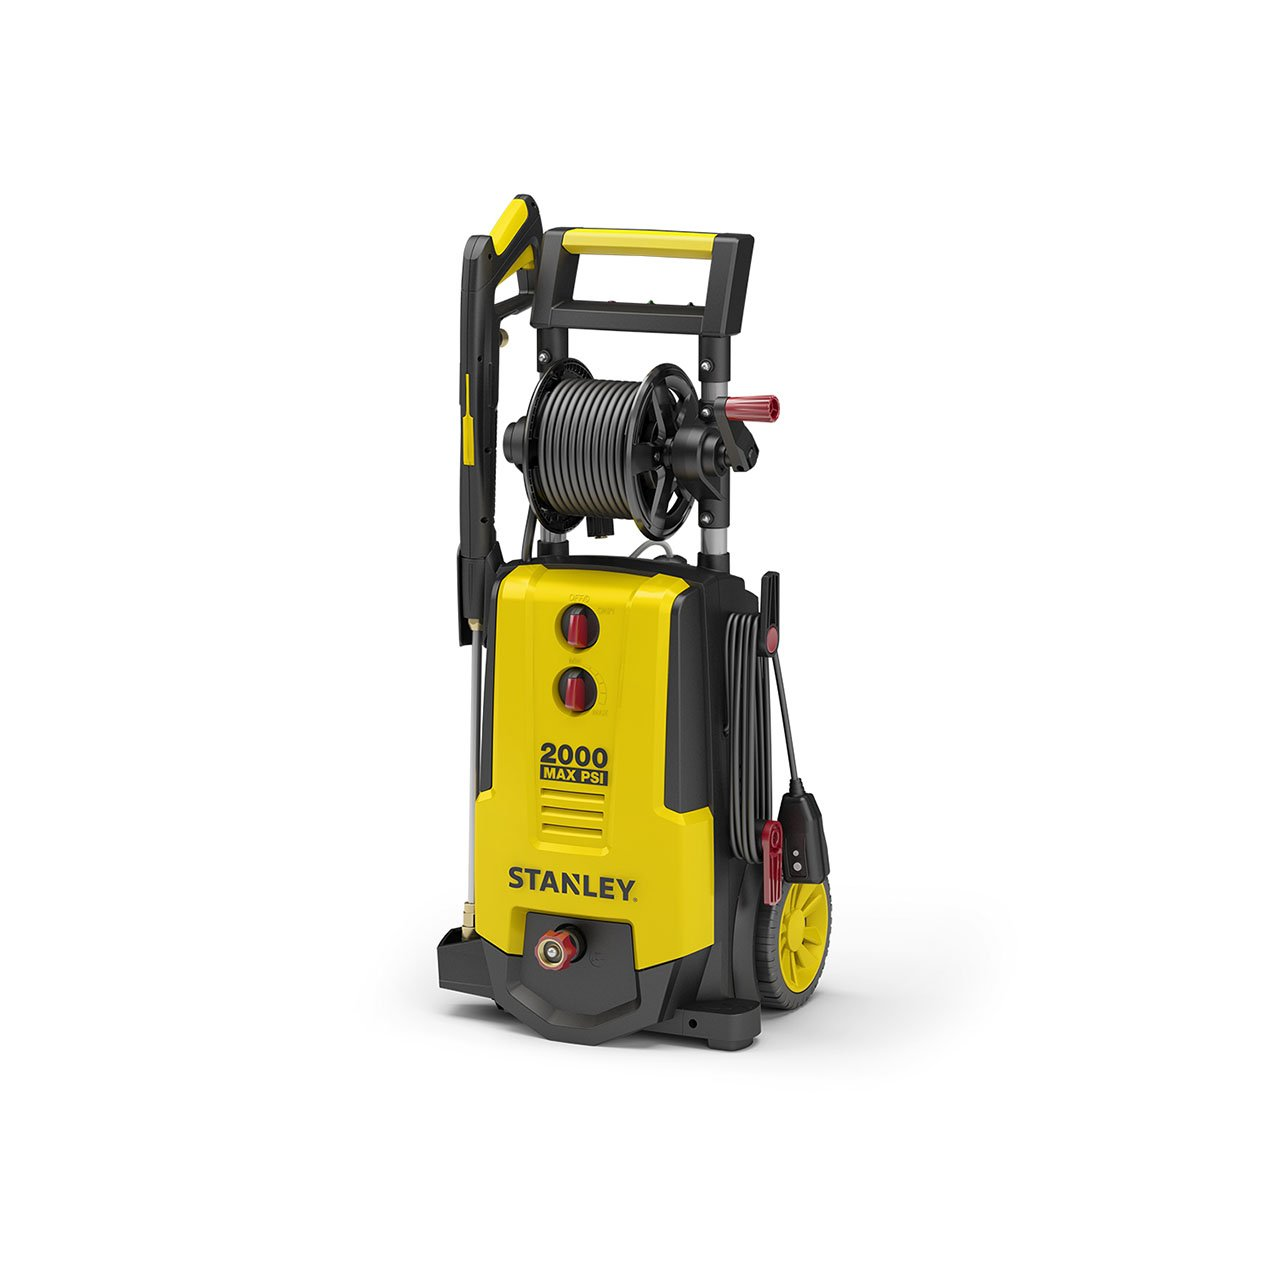 Stanley SHP2000 2000 psi Electric Pressure Washer with Nozzles, Spray Gun, Hose Reel, 30' Hose & Detergent Tank, Yellow, Medium